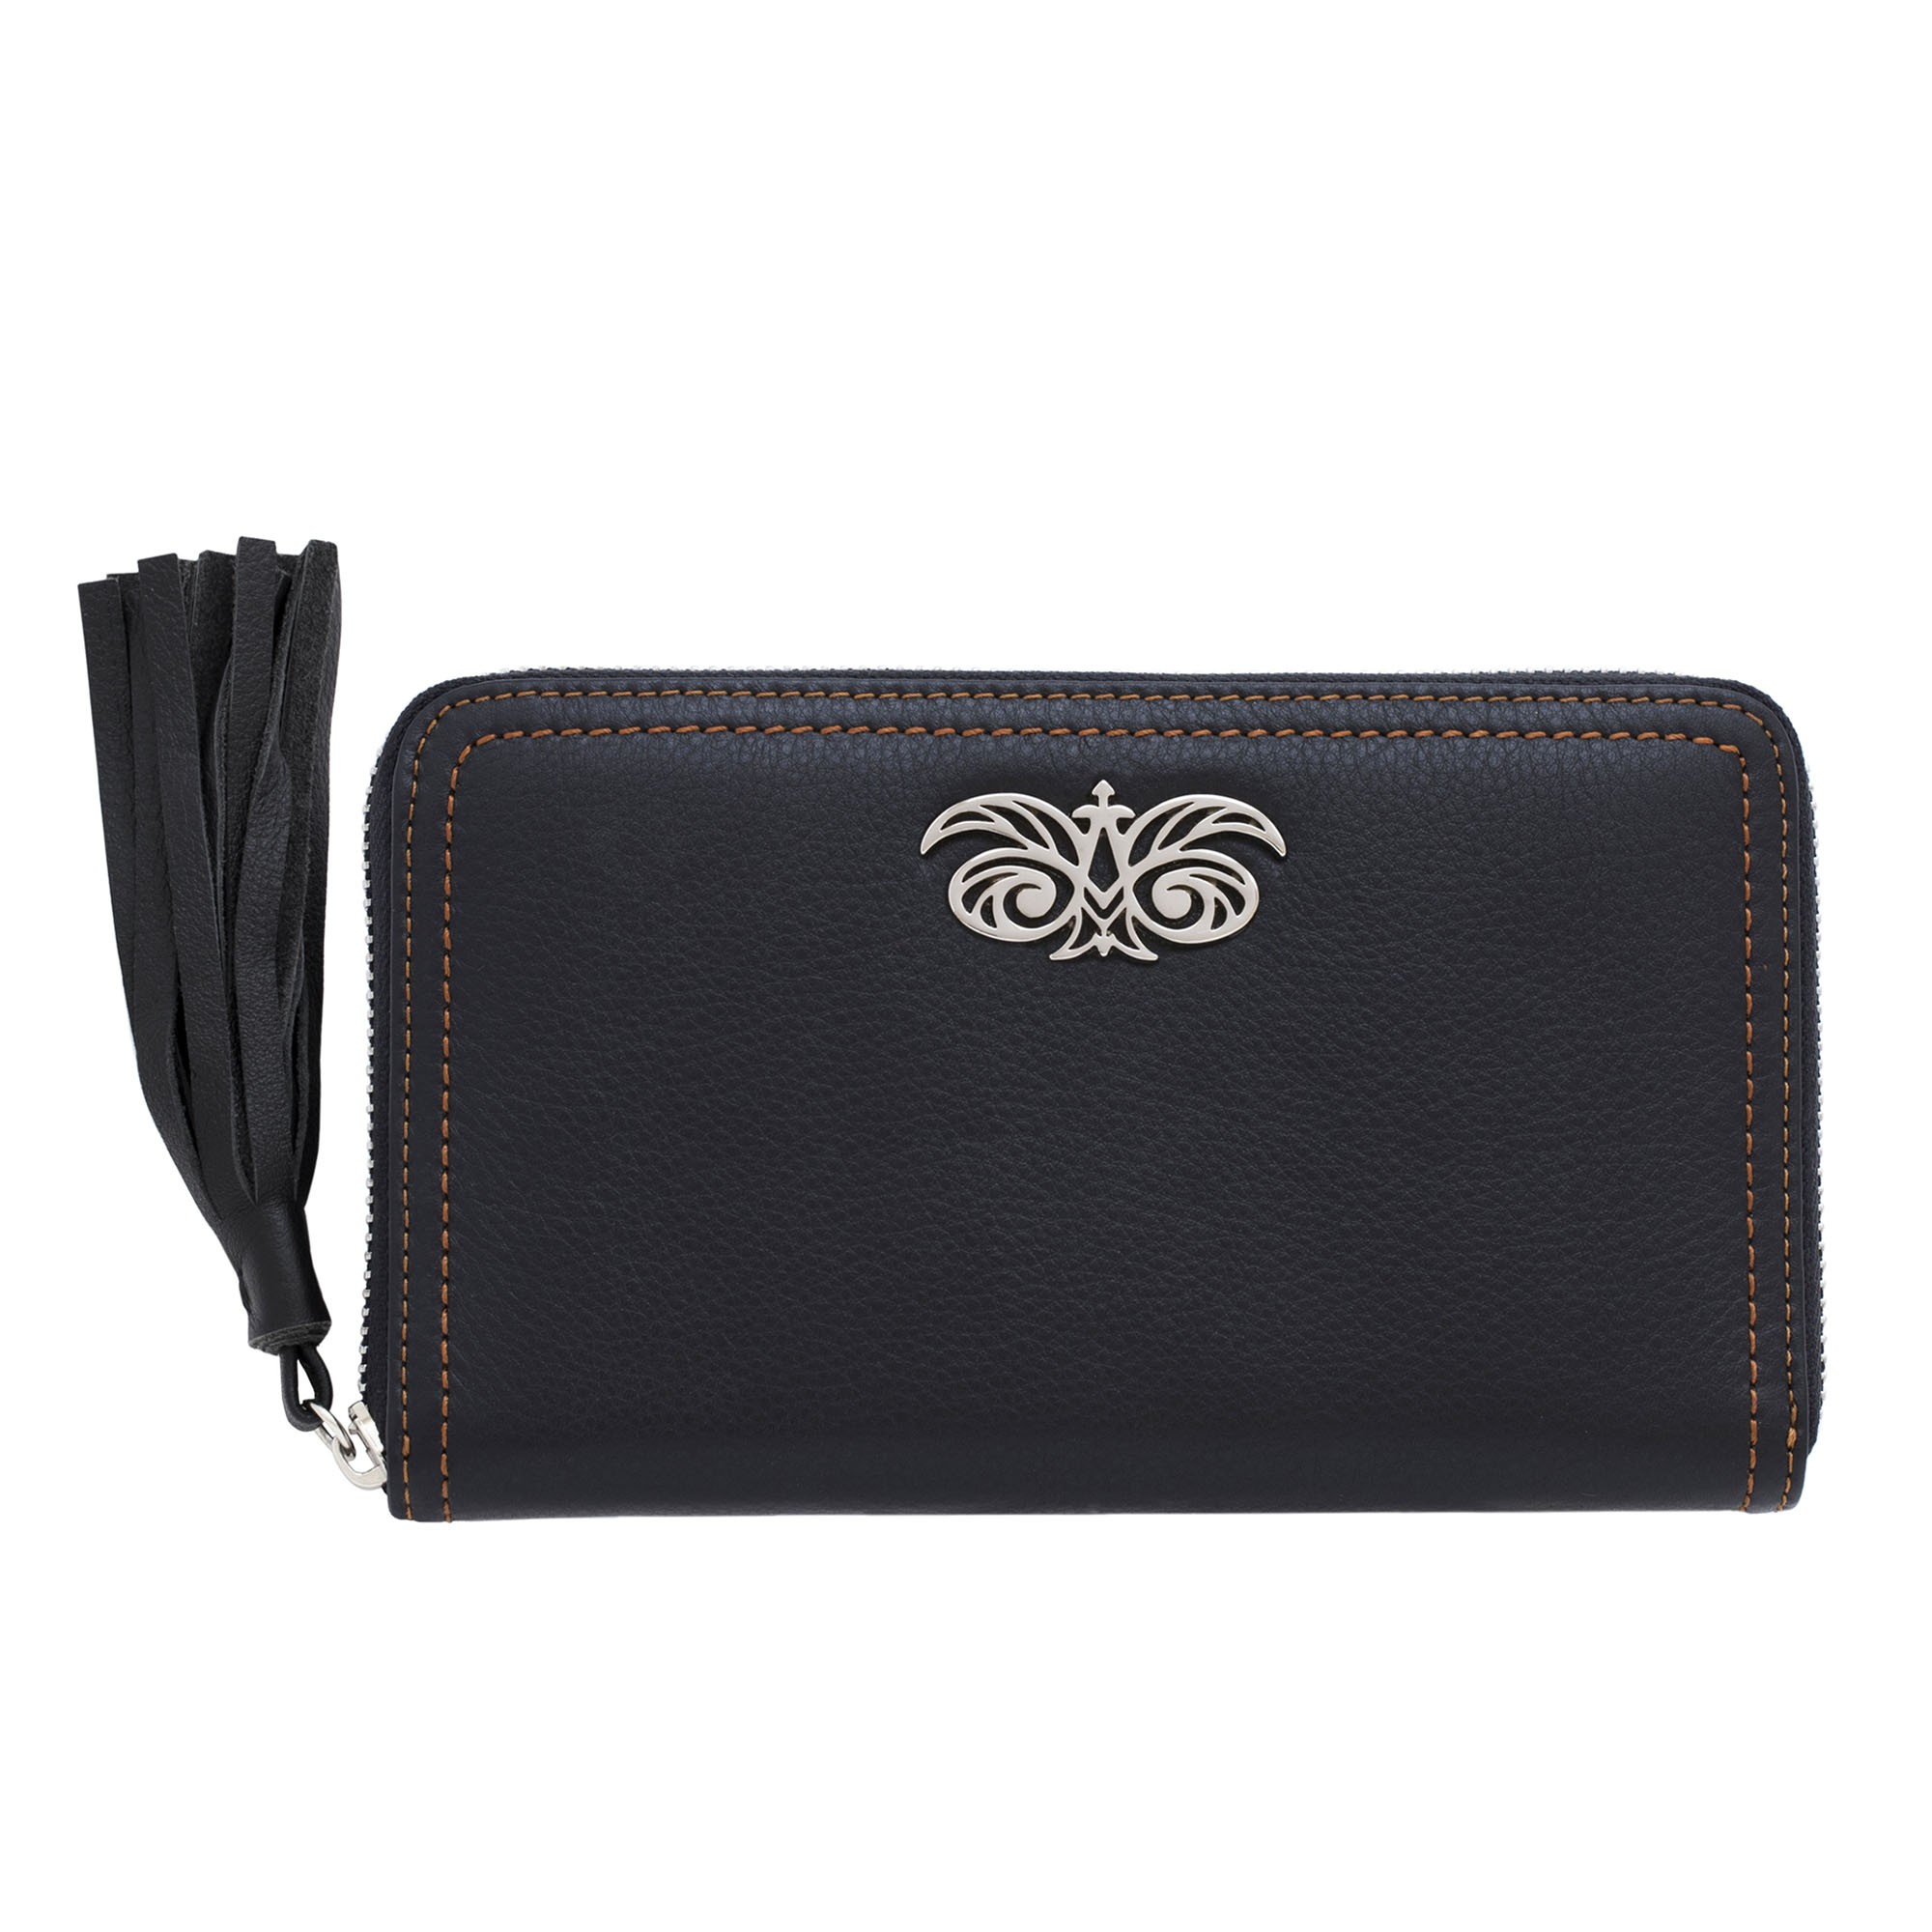 """Zipper organizer """"LISE"""" in grained calfskin with leather zipper, black color - front view"""